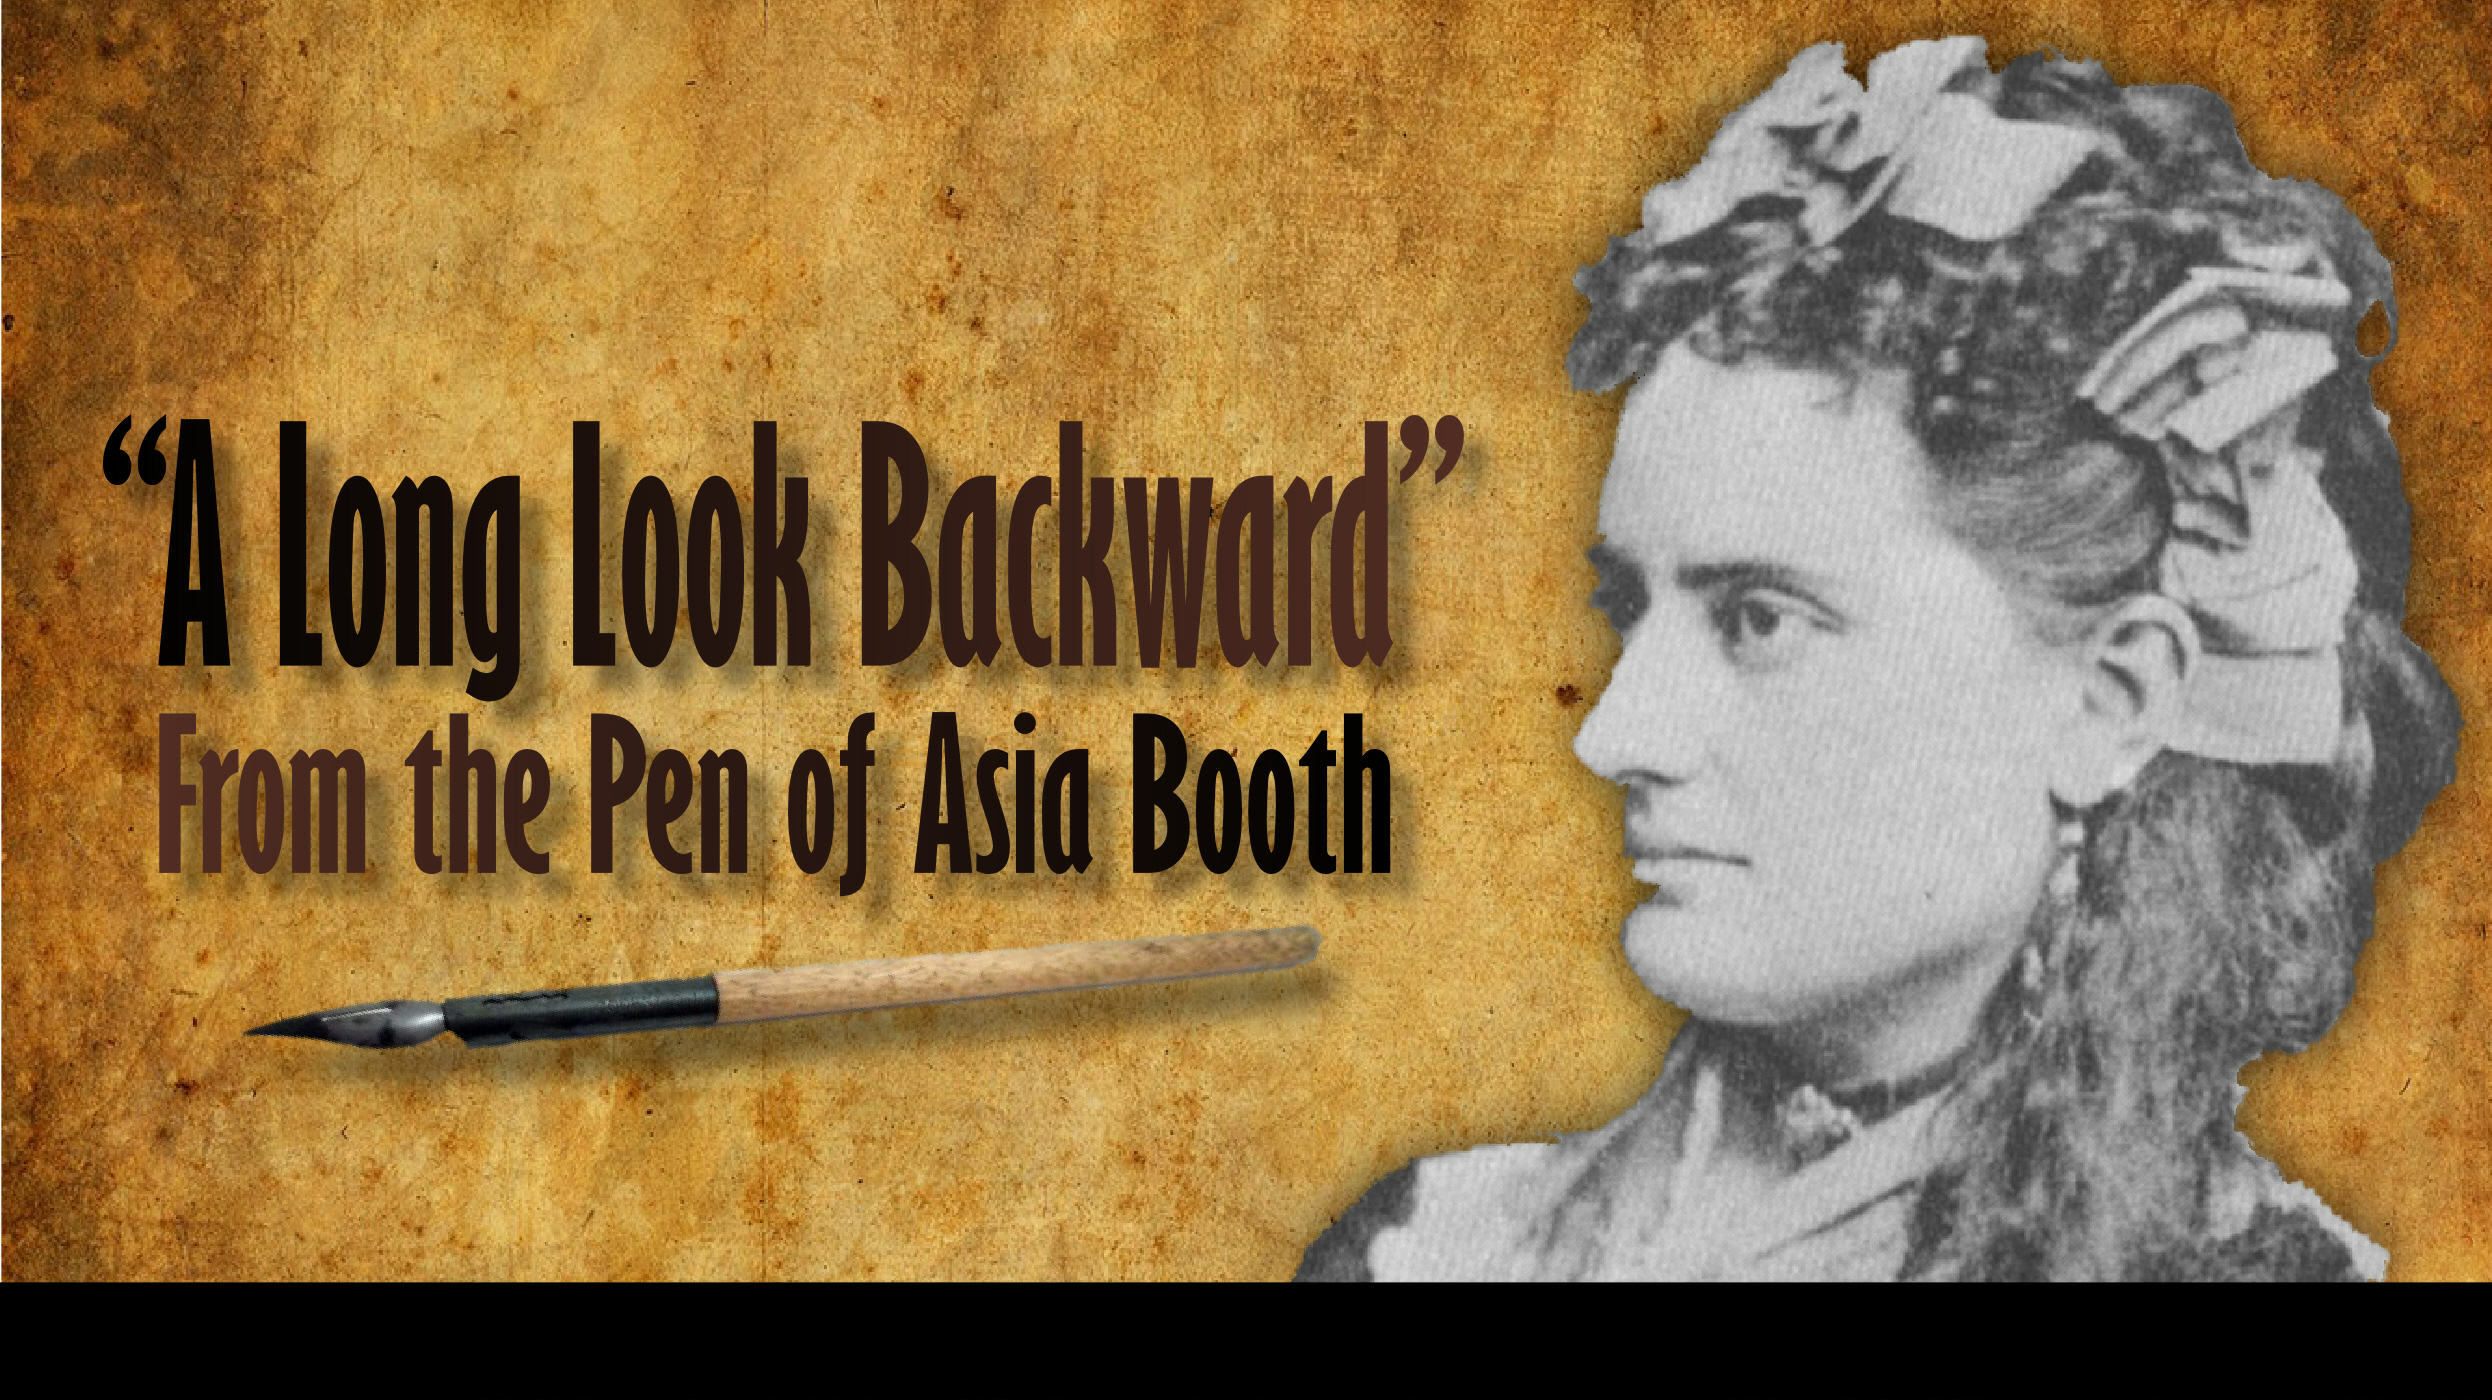 Asia Booth, sister of John Wilkes Booth